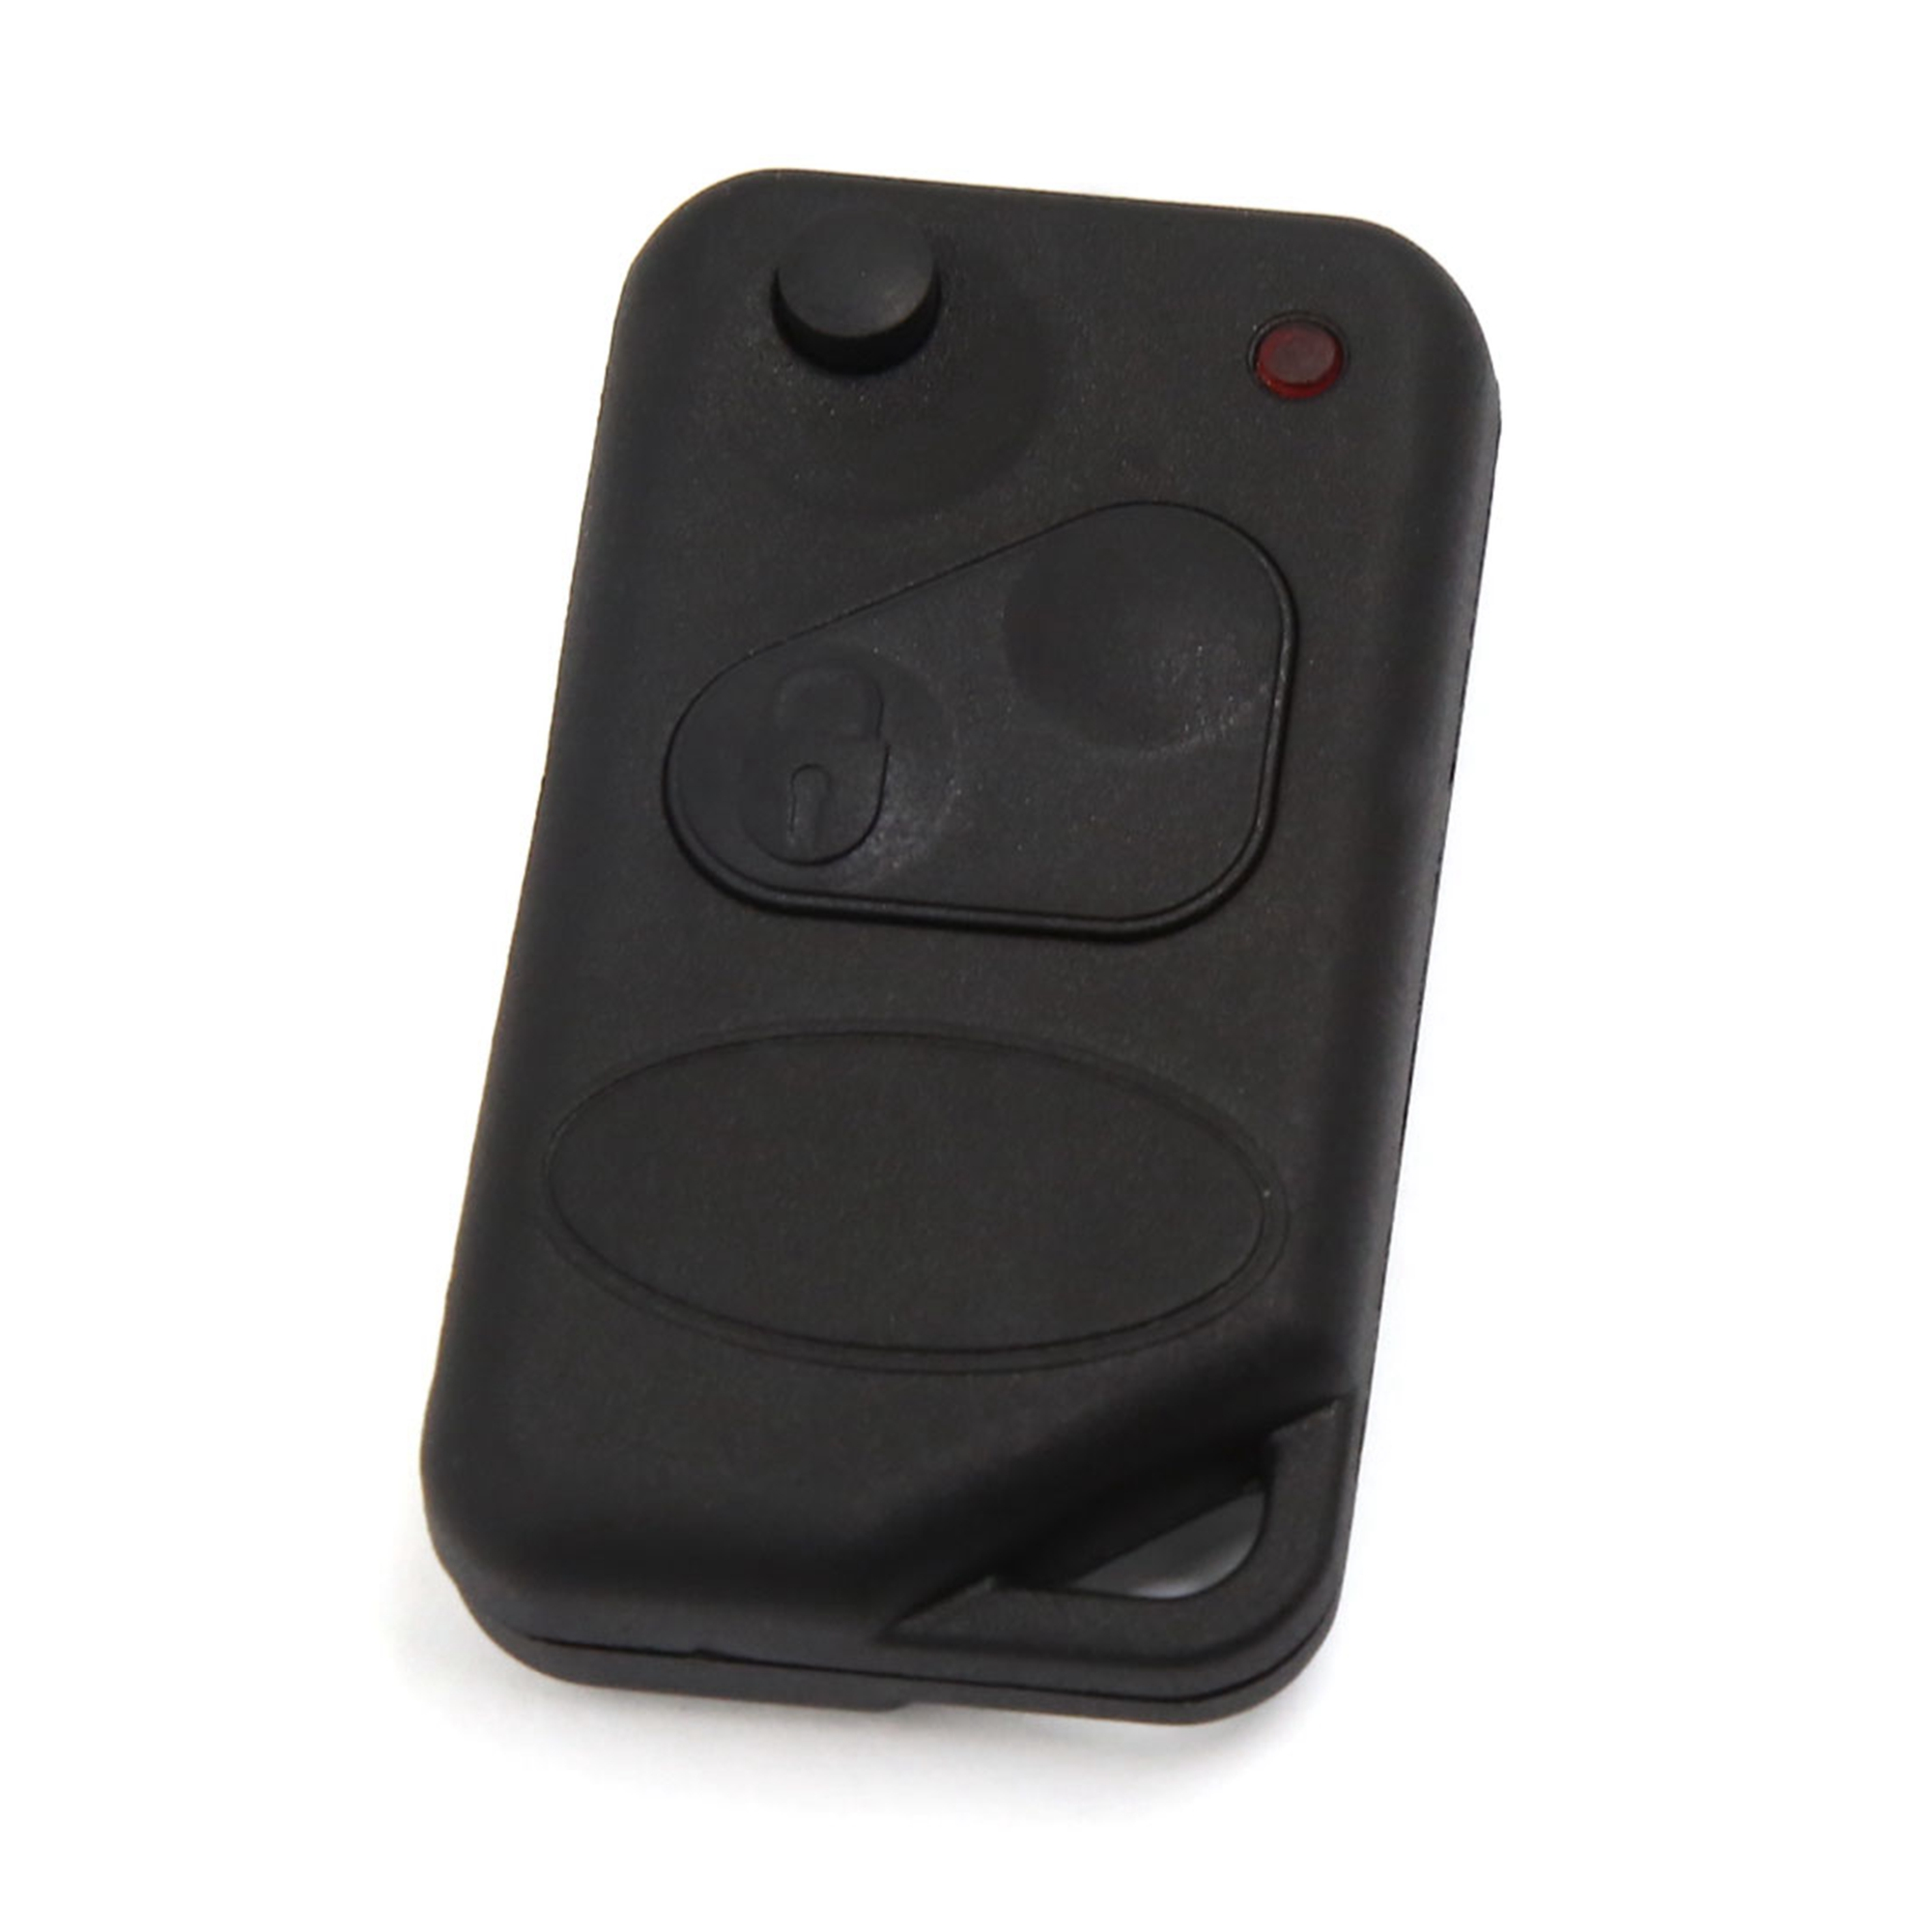 2 Buttons Keyless Entry Remote Flip Key Fob Shell Case for Land Rover LQN1821